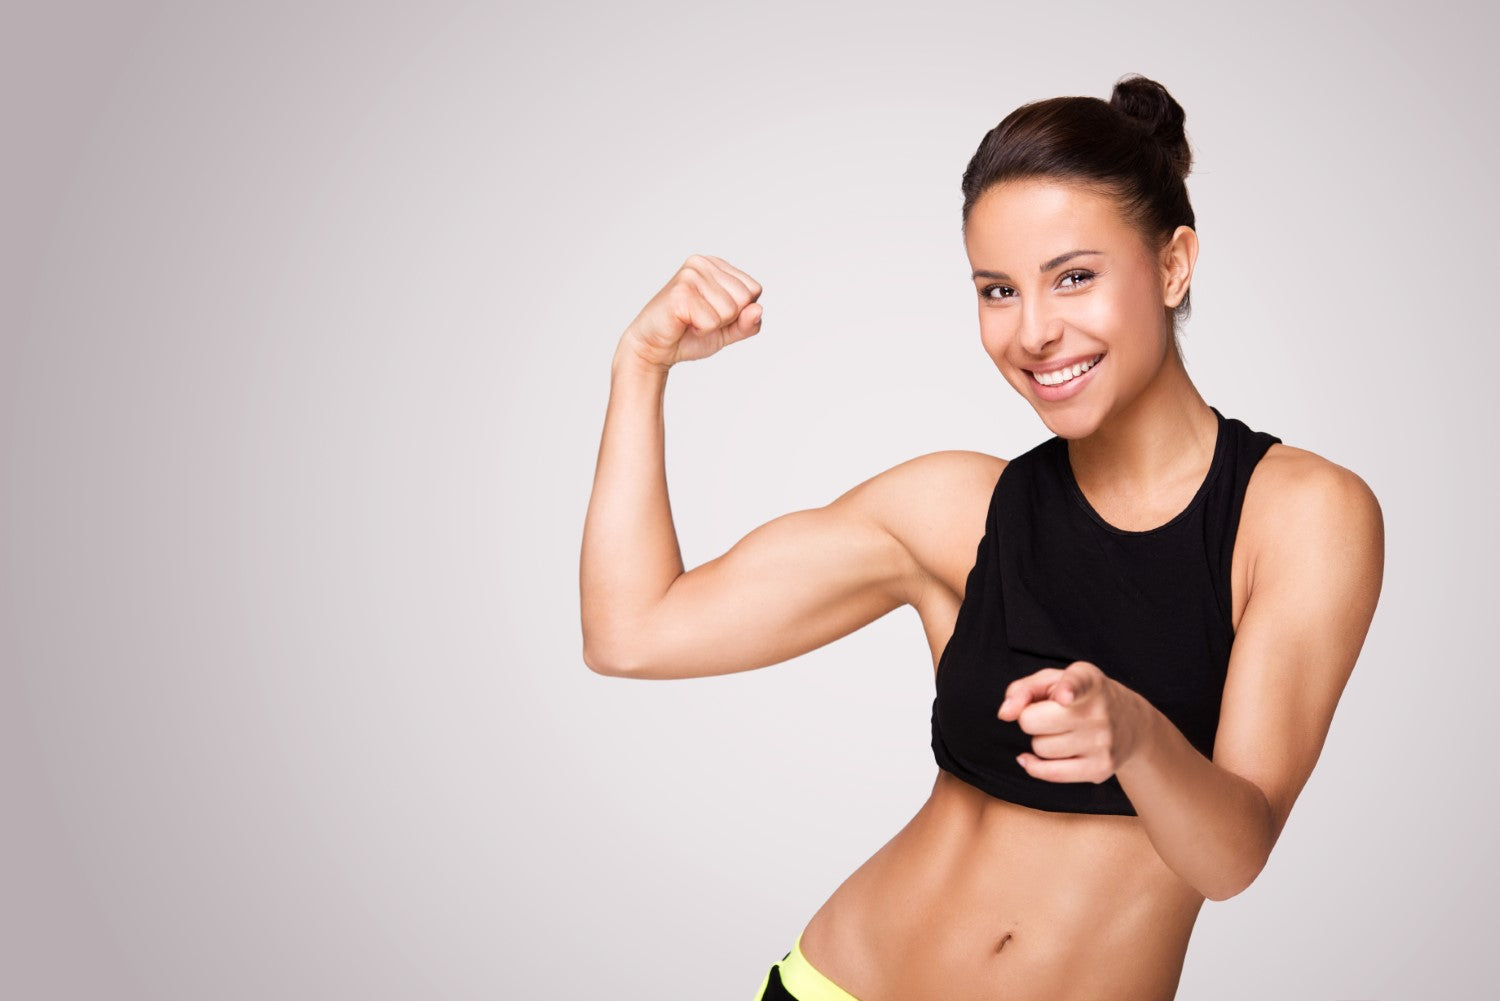 physically fit lady